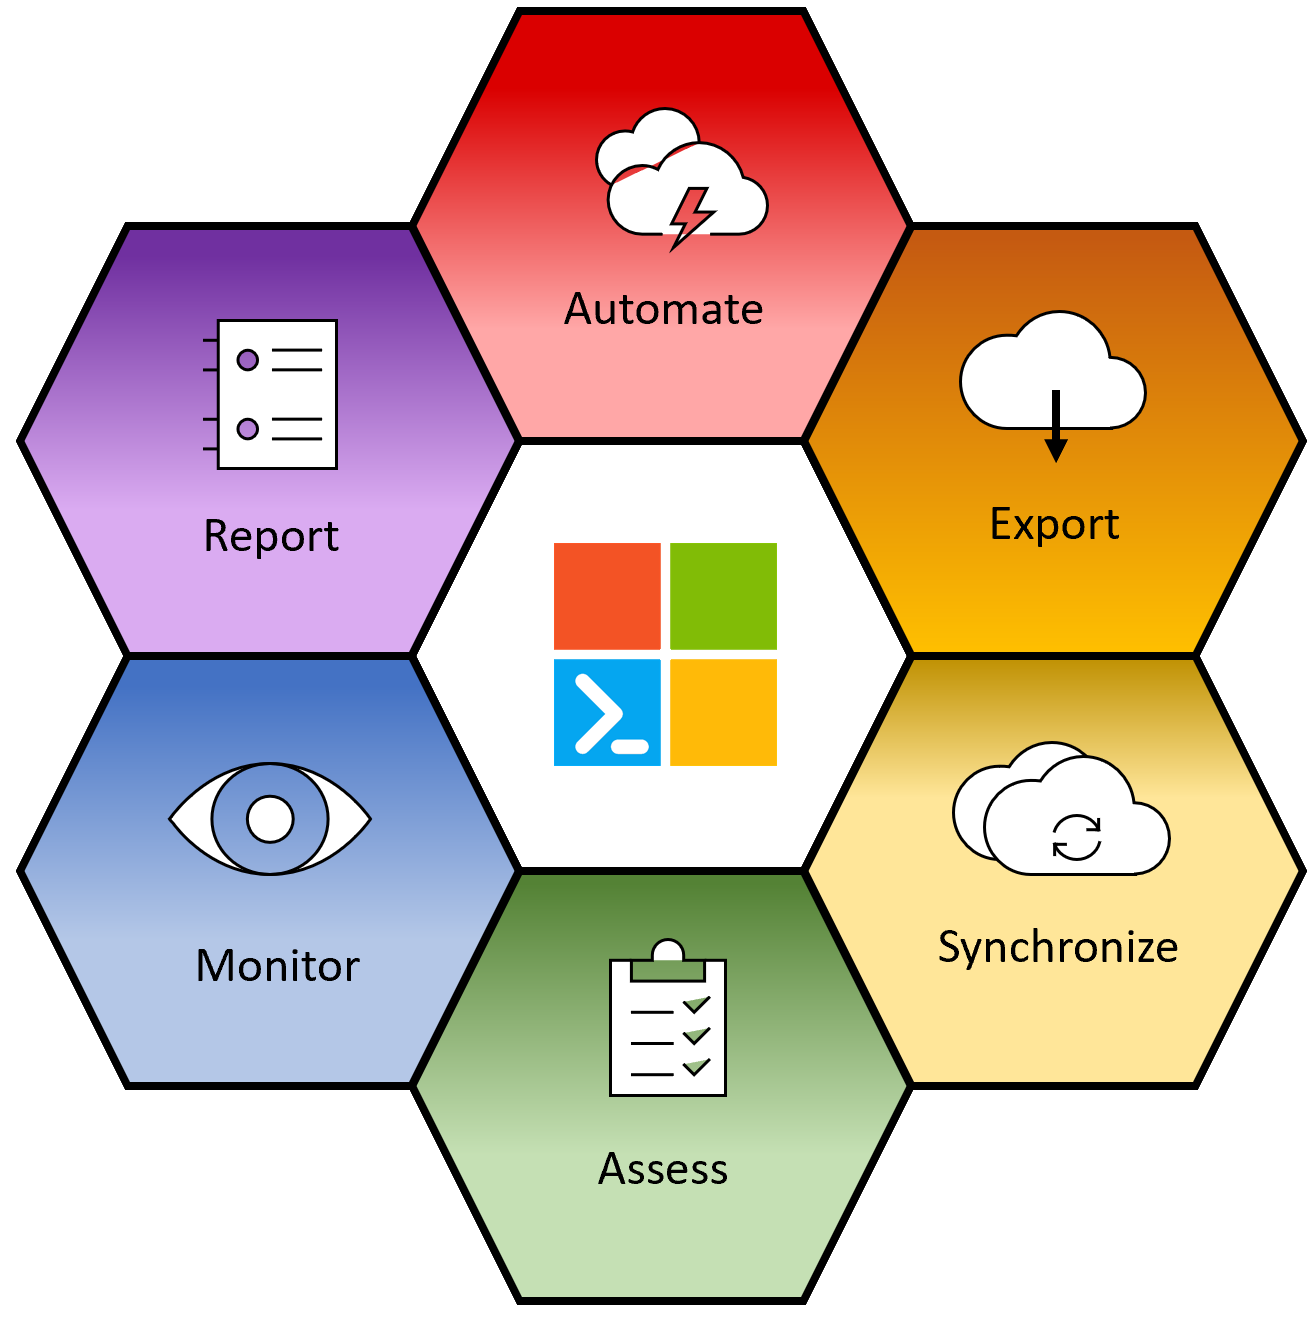 Microsoft365DSC: Automate, Extract, Synchronize, Assess, Monitor & Report